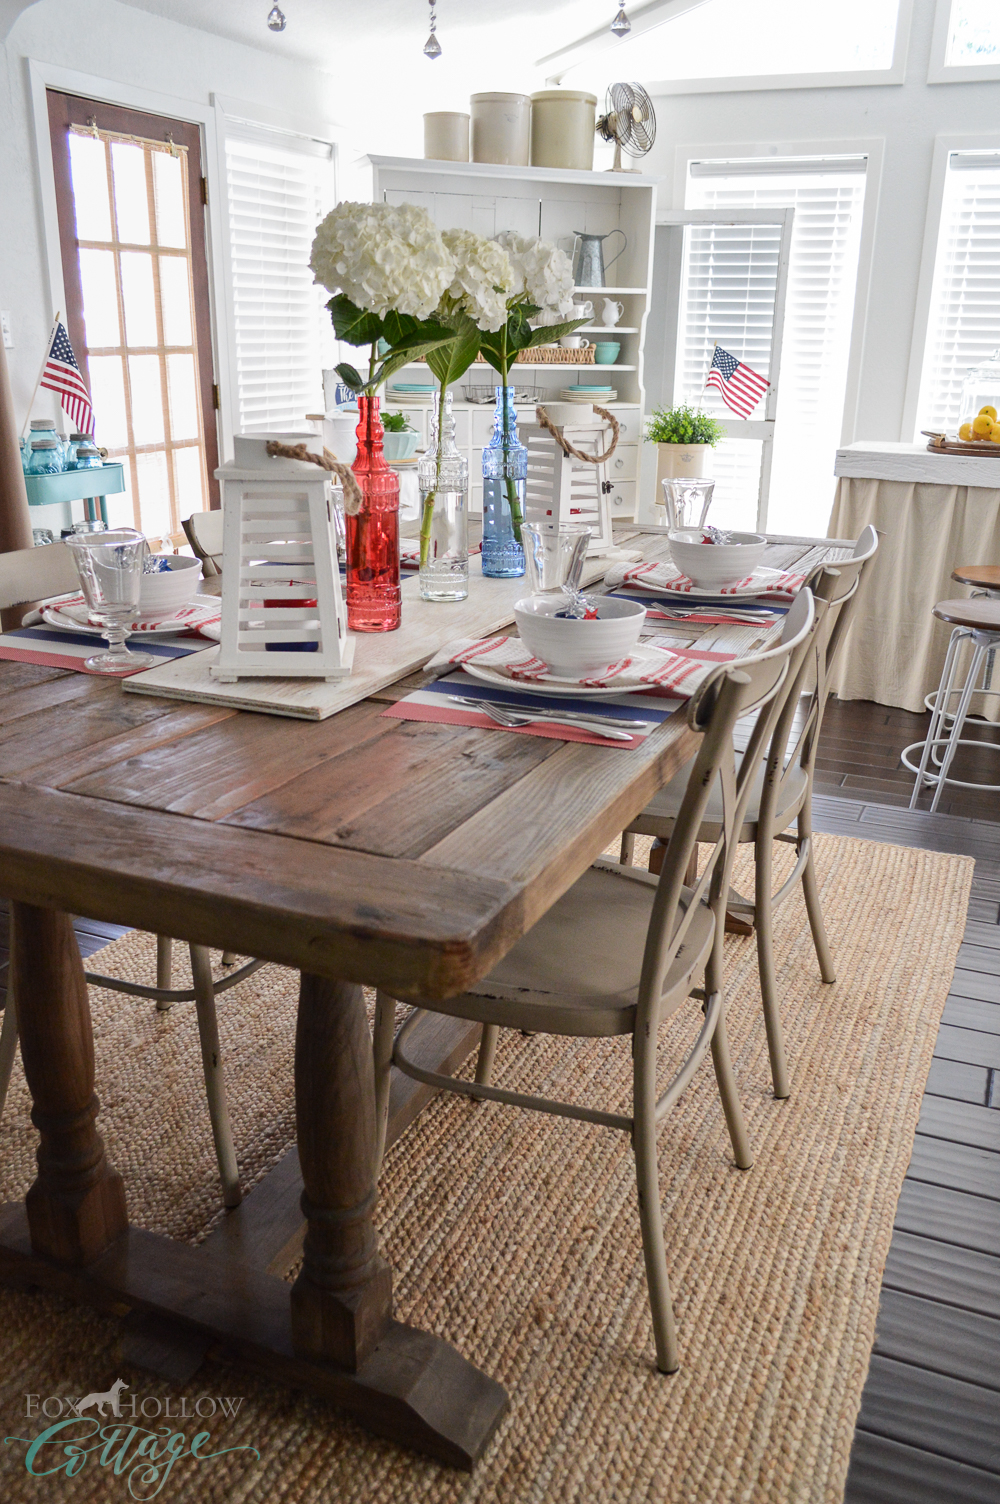 Cottage Farmhouse Patriotic Red,White,Blue Table Farm Table. Fourth of July Dollar Tree Tablescape